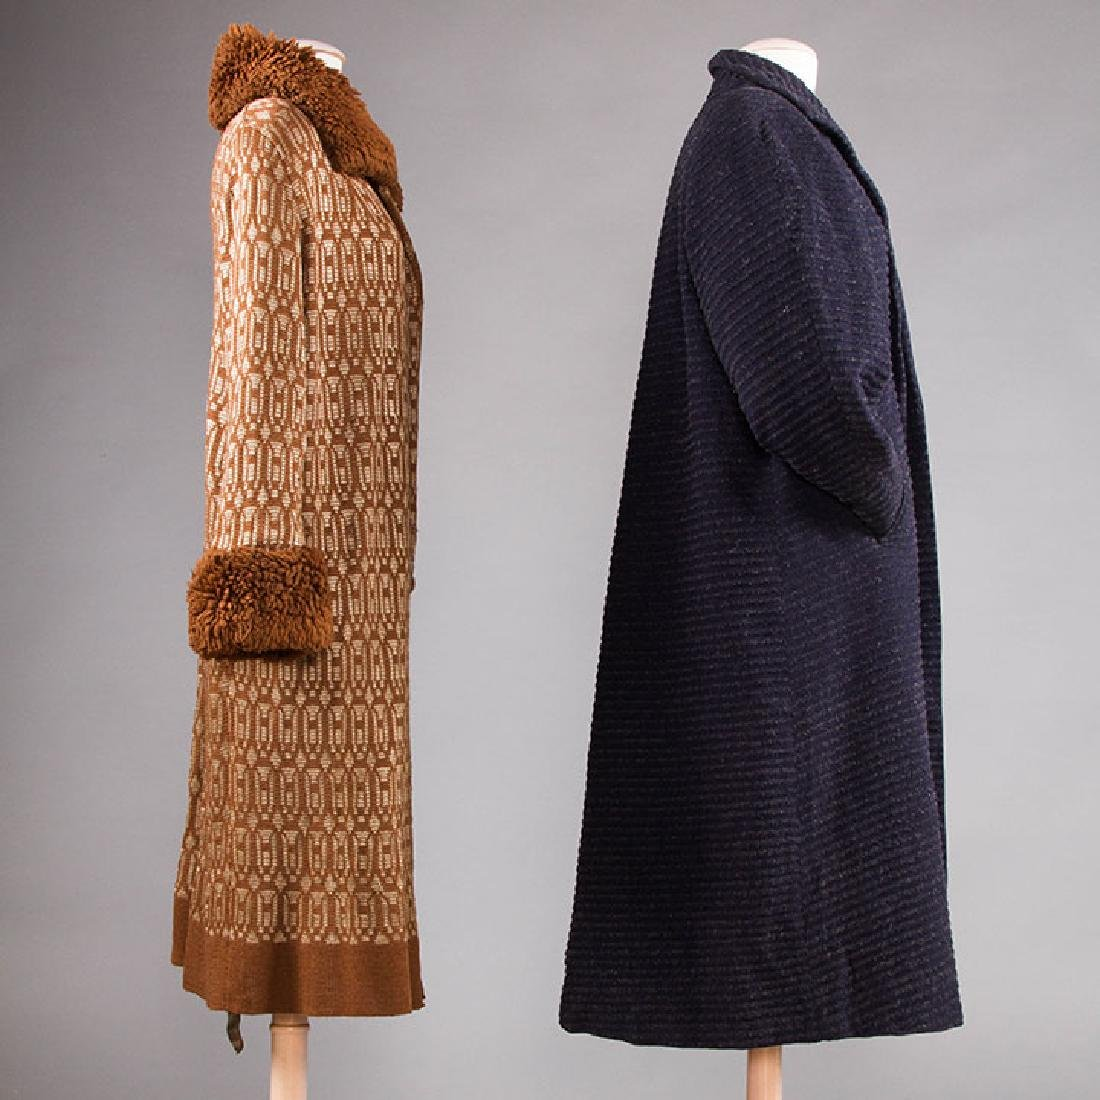 2 WOOL DAY COATS, 1920s & 1930s - 2